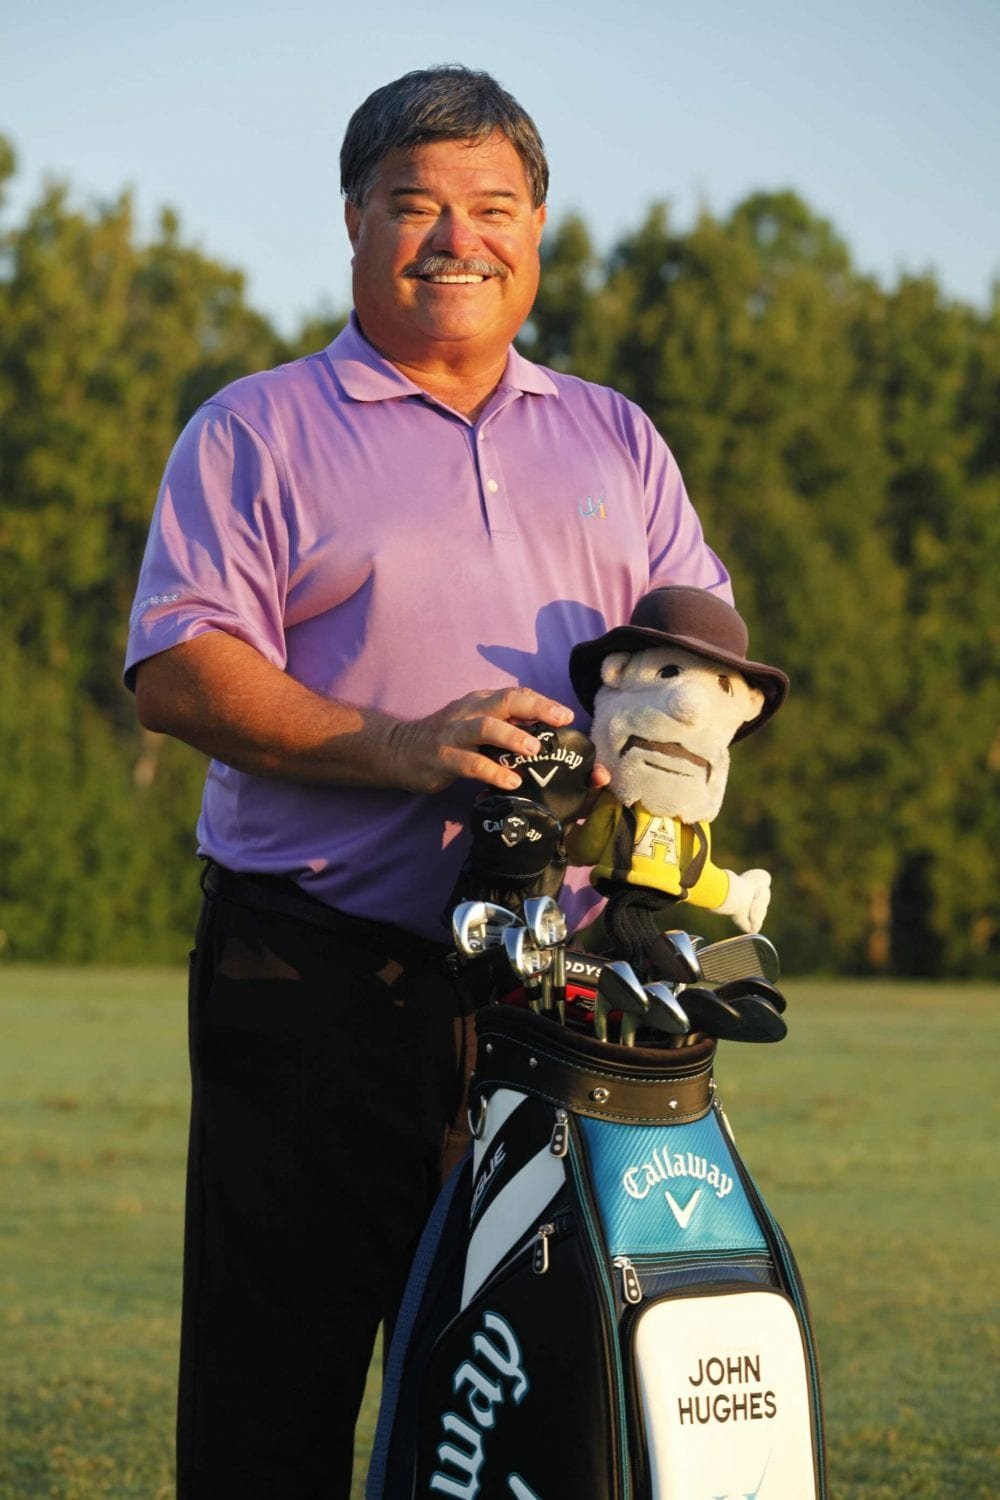 About John Hughes Golf, Orlando Golf Lessons, Orlando Golf Schools, Orlando Beginner Golf Lessons, Orlando Beginner Golf Schools, Kissimmee Golf Lessons, Kissimmee Golf Schools, Orlando Junior Golf Lessons, Orlando Junior Golf Schools, Orlando Junior Golf Camps, Orlando Ladies Golf Lessons, Orlando Ladies Golf Schools, Florida Golf Lessons, Florida Golf Schools, Orlando Golf School Vacations